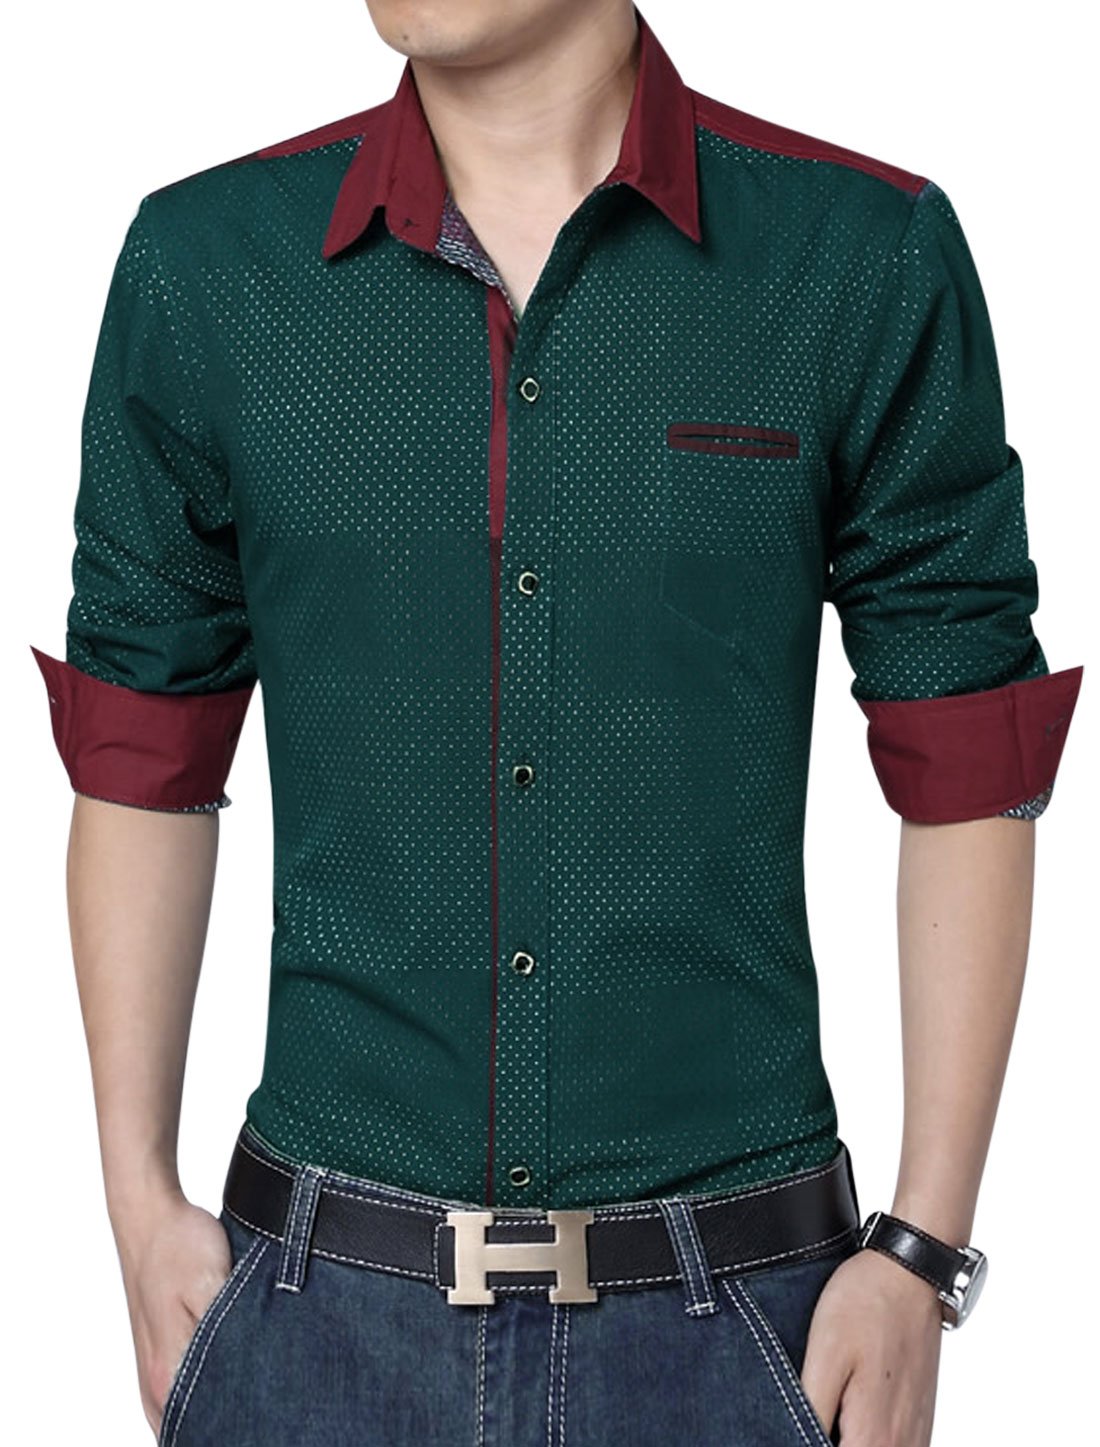 Men Single Breasted Embroidery Design Gentleman Shirt Dusty Green L